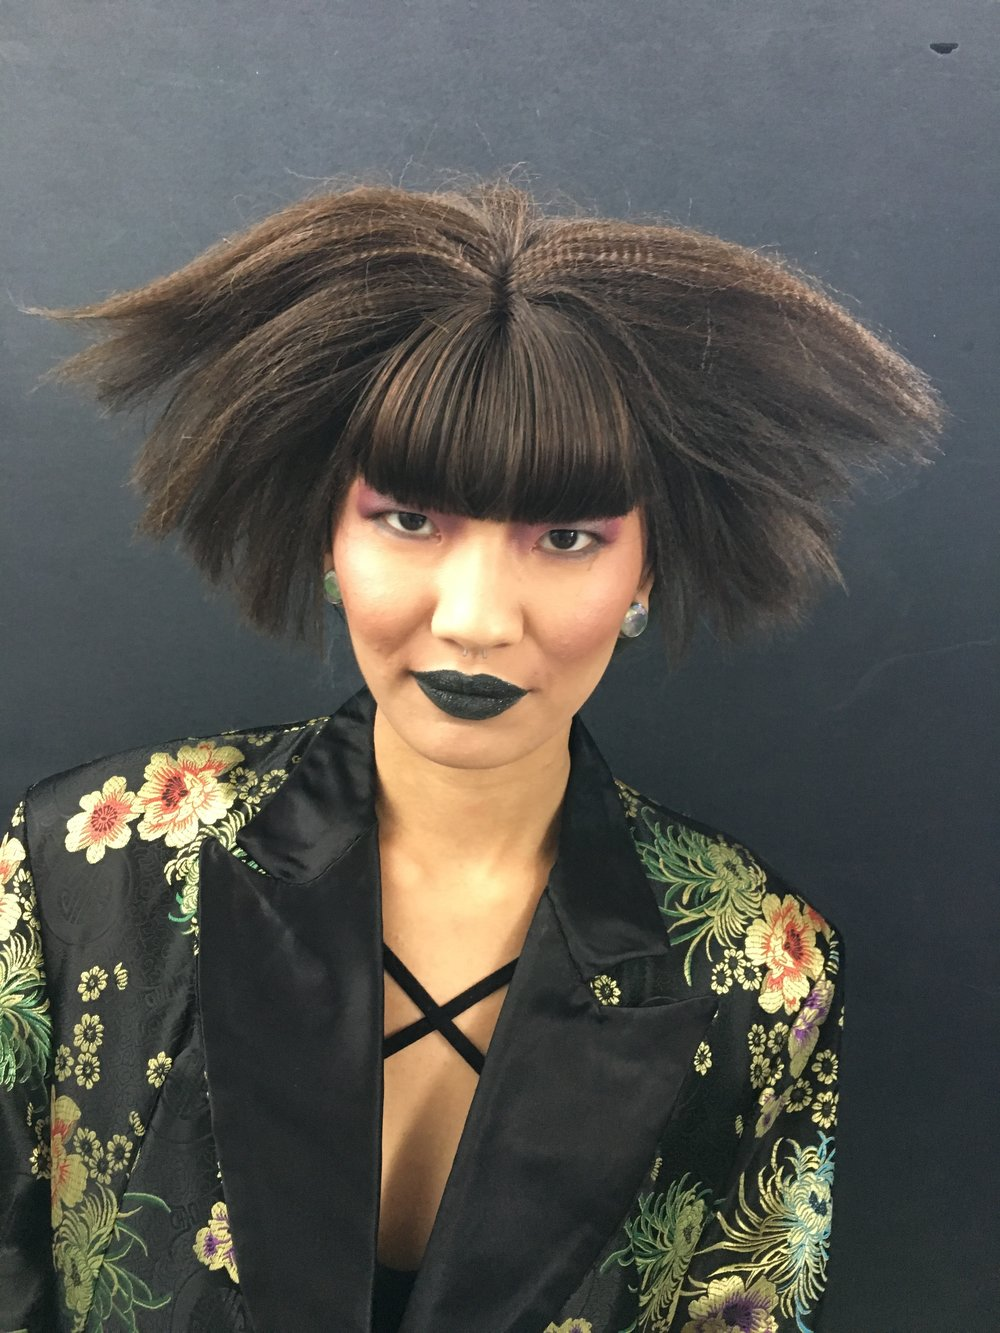 bts image of Mei Li all about the fringe